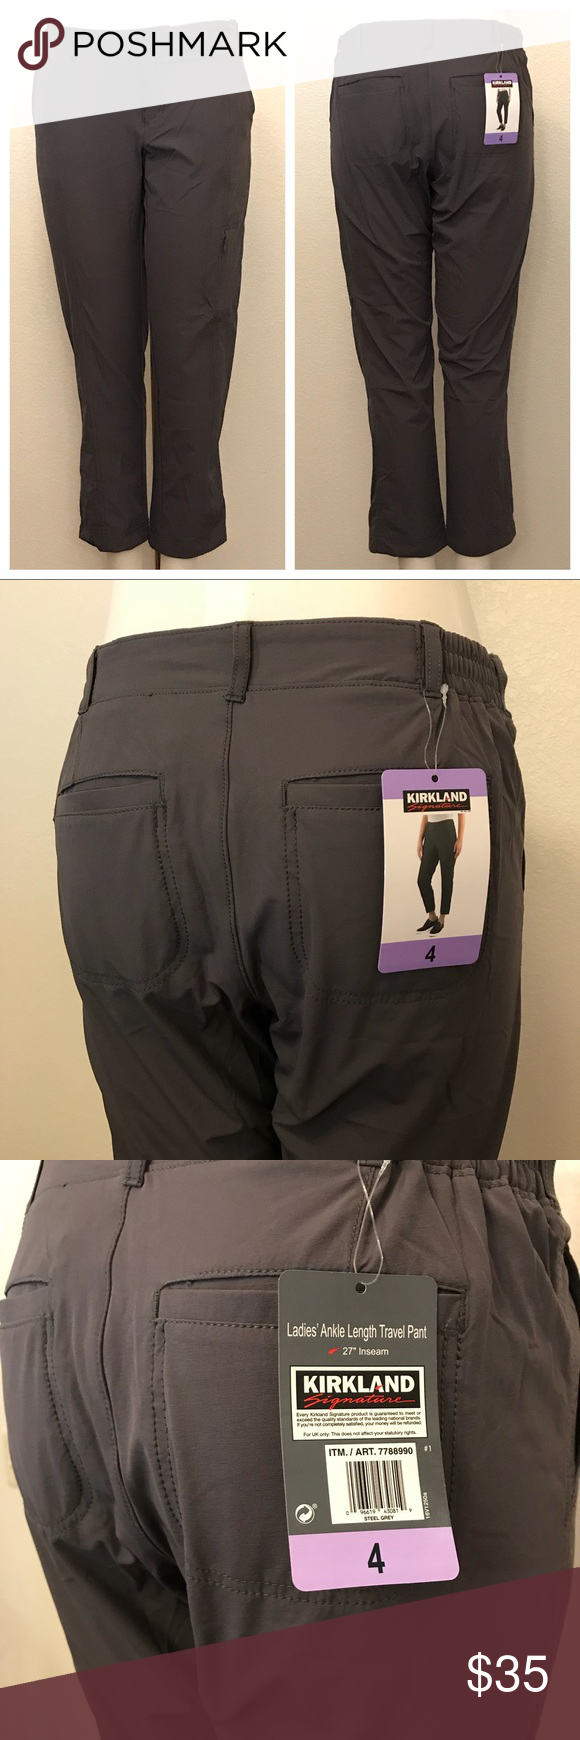 1d3be82ff49af Kirkland Signature Ladies Ankle Length Travel Pant Size 4. 27 inch inseam.  New with tags. Offers and bundle offers are welcome! Kirkland Signature  Pants